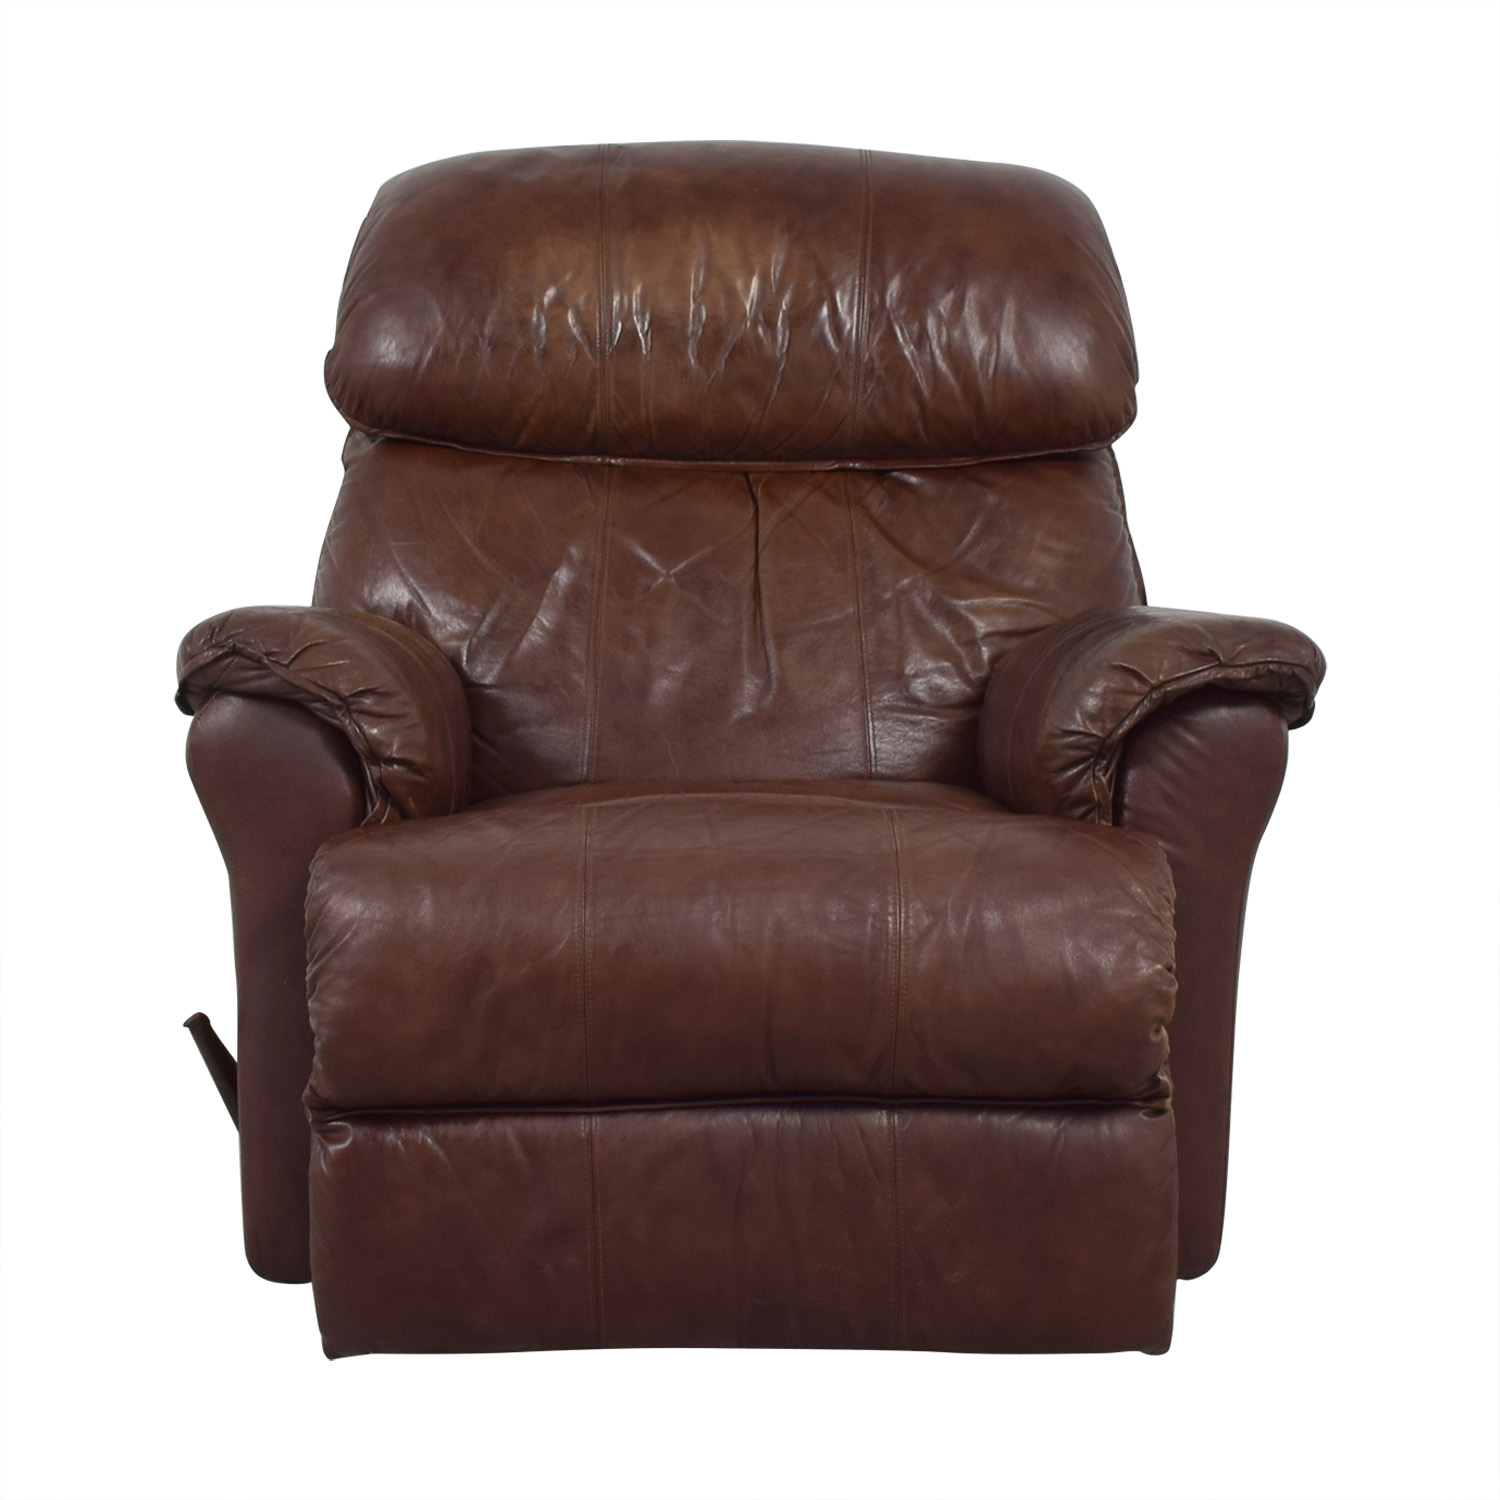 Brown Manual Recliner used